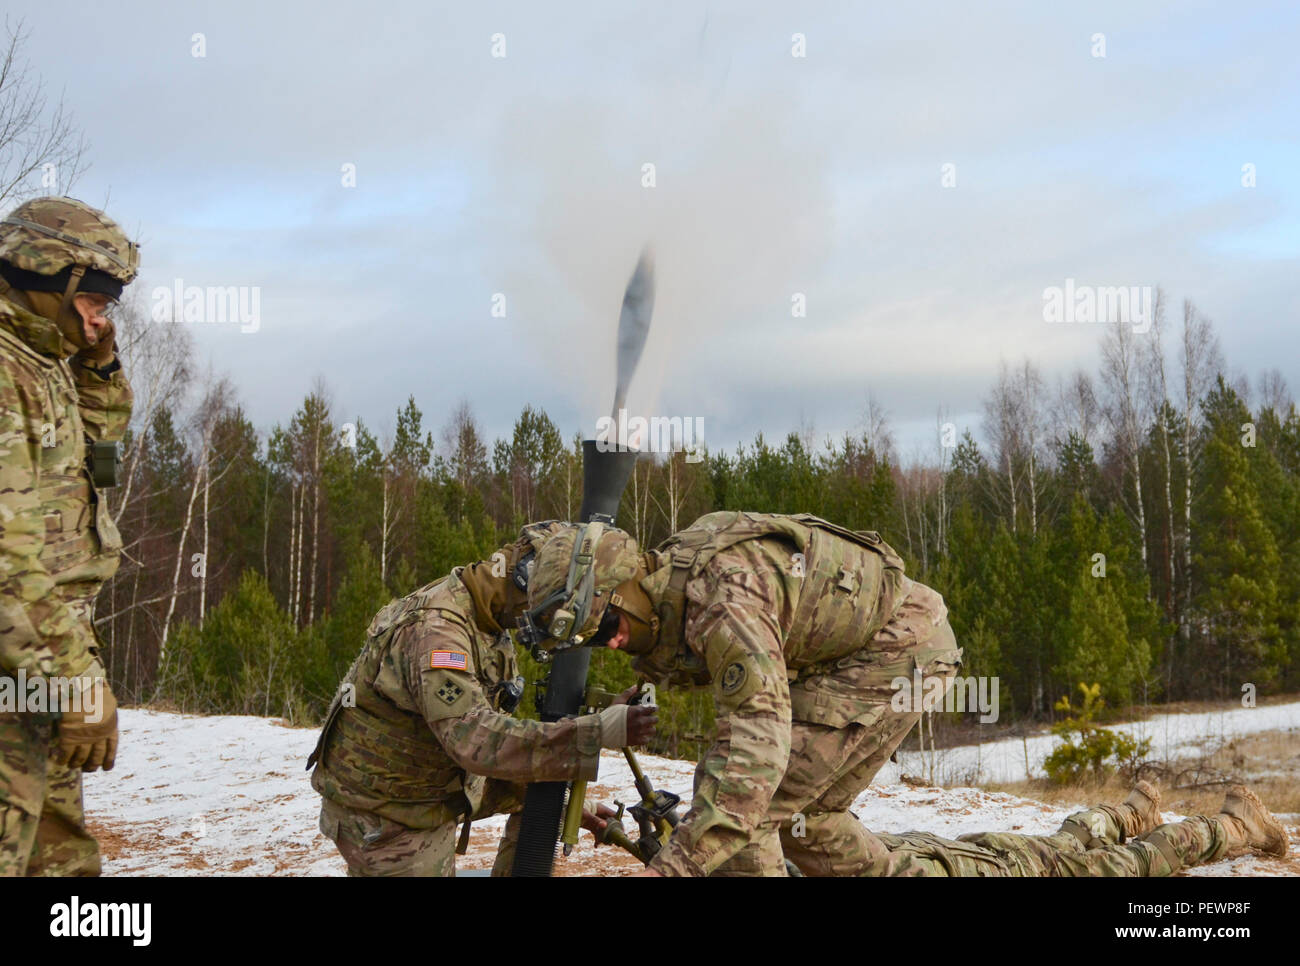 An 81 mm mortar round can be seen as Soldiers of 3rd Squadron, 2nd Cavalry Regiment, stationed out of Vilseck, Germany, shoot it out of an M252 Mortar System during a joint training exercise in Adazi Training Area in Latvia, Feb. 4, 2016. (Photo by U.S. Army Staff Sgt. Steven M. Colvin/Released) - Stock Image